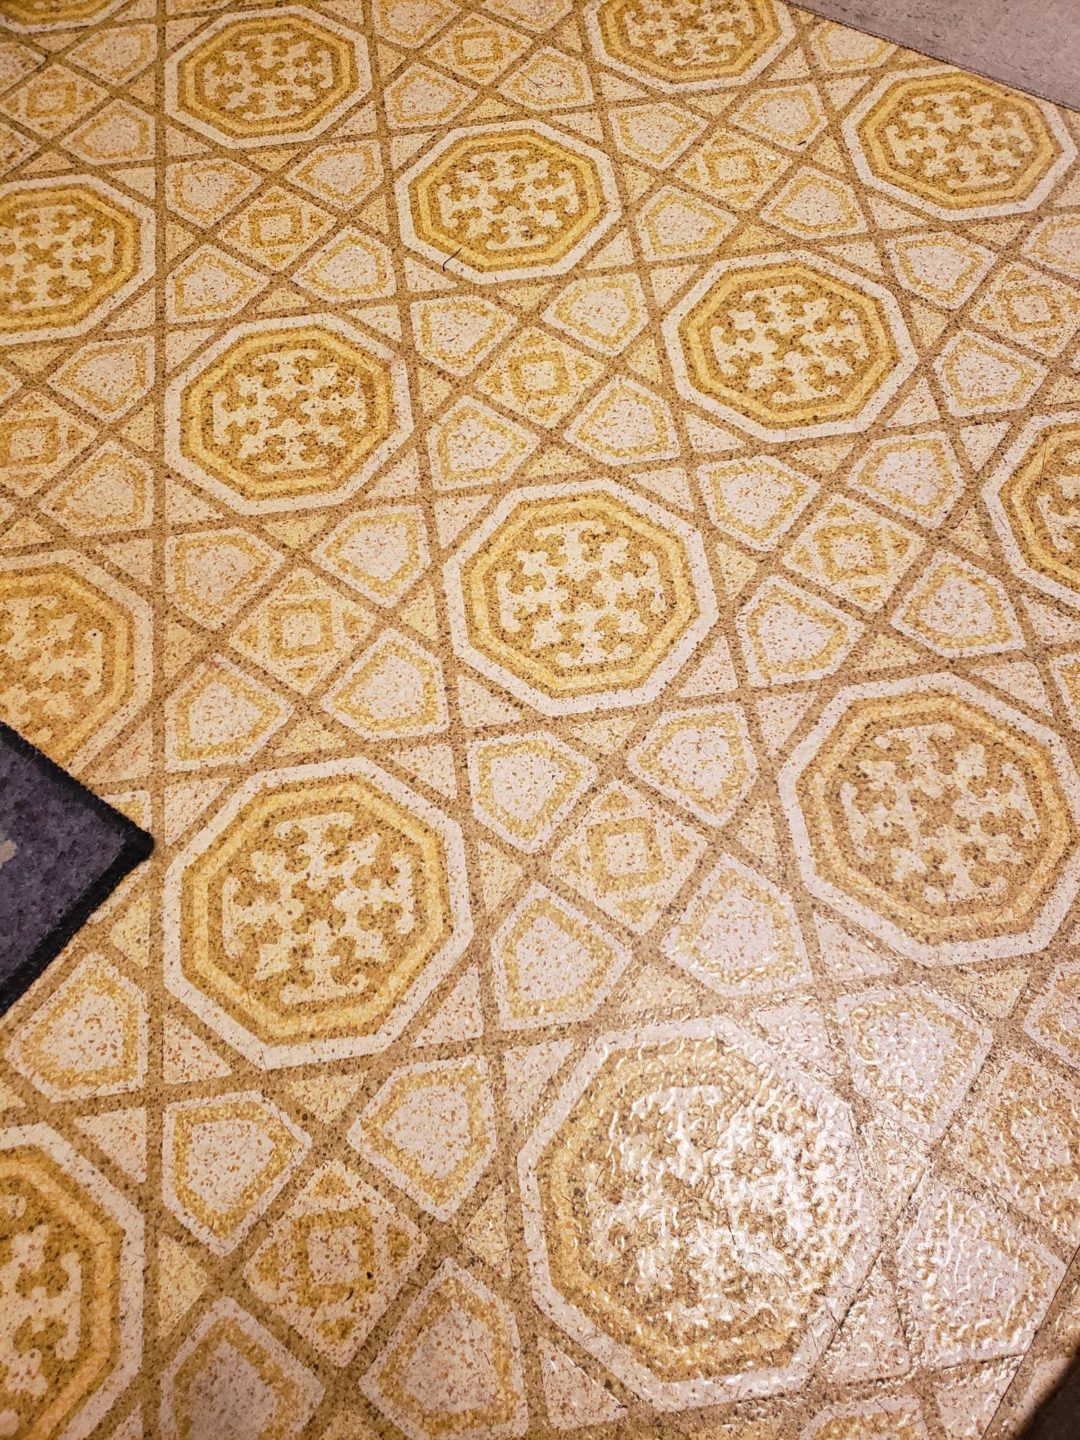 Ugly Duckling Yellow – Become a Swan! ugly floor contest entry photo